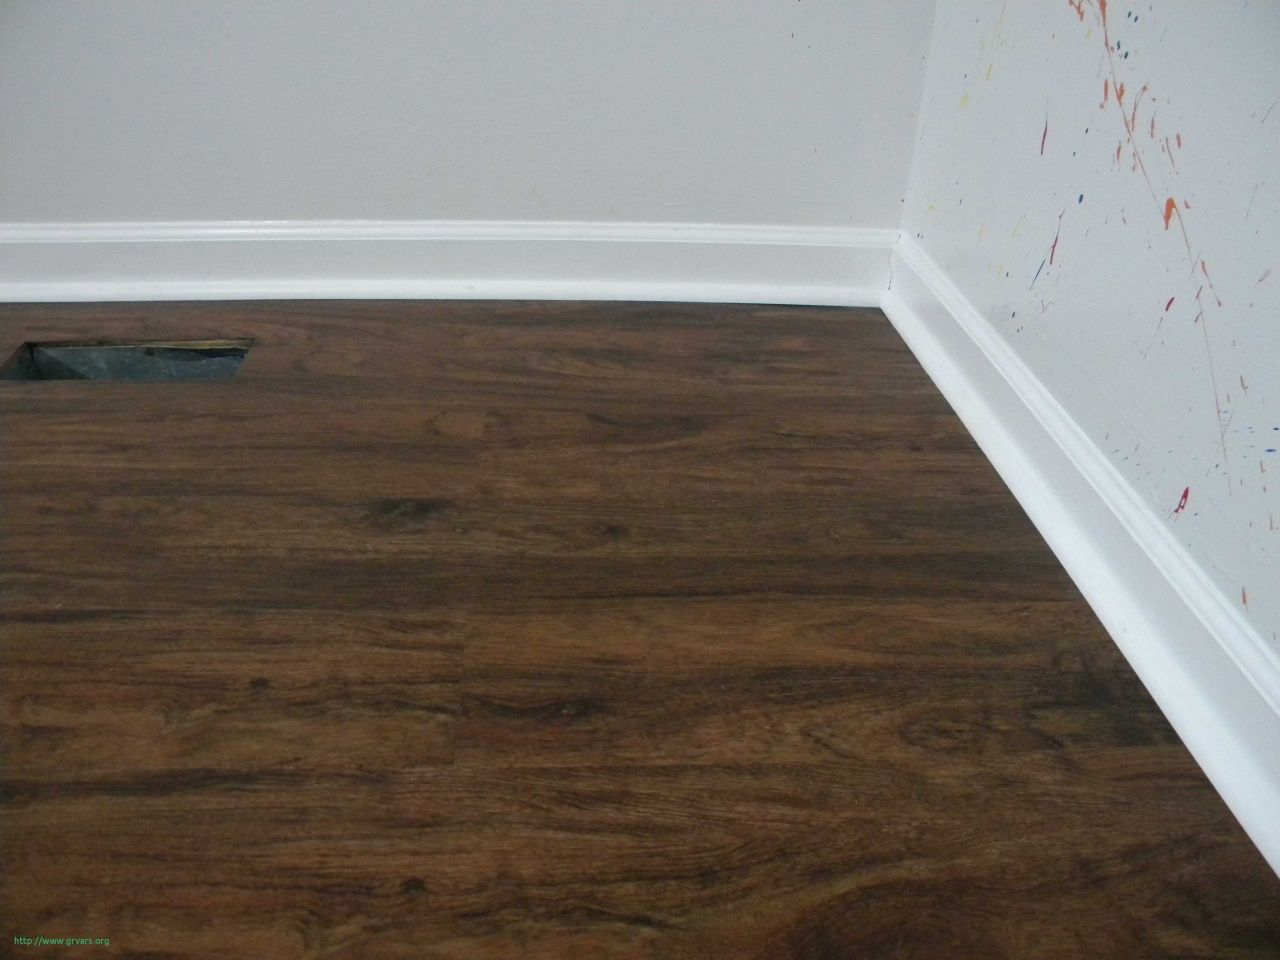 How Much Does Lowes Charge To Install Vinyl Plank Flooring Vinyl Plank Flooring Wood Plank Flooring Laying Vinyl Flooring